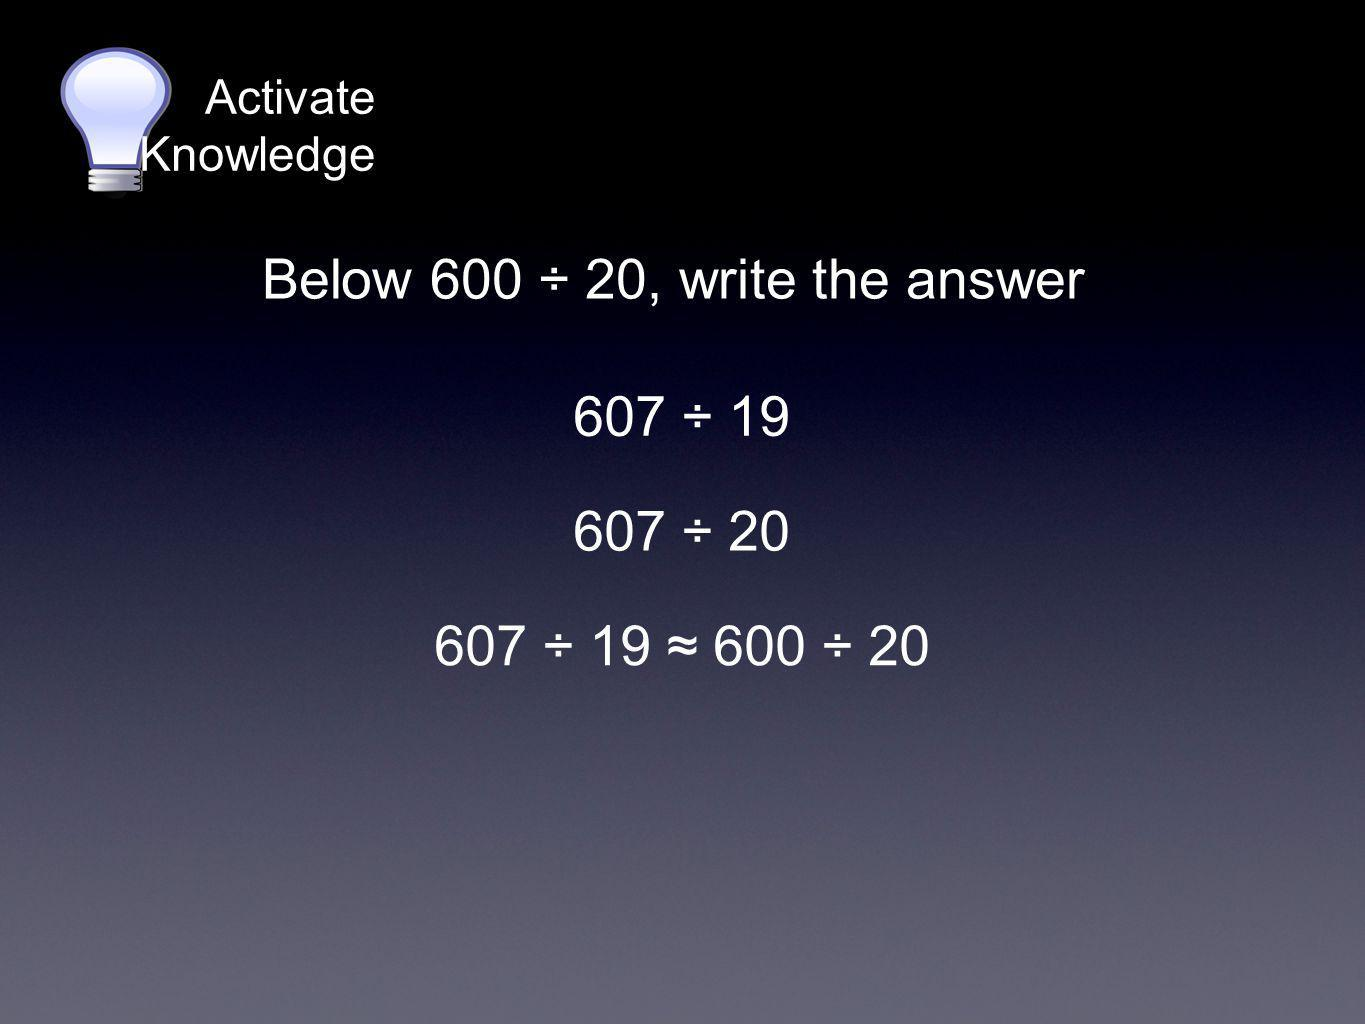 Below 600 ÷ 20, write the answer